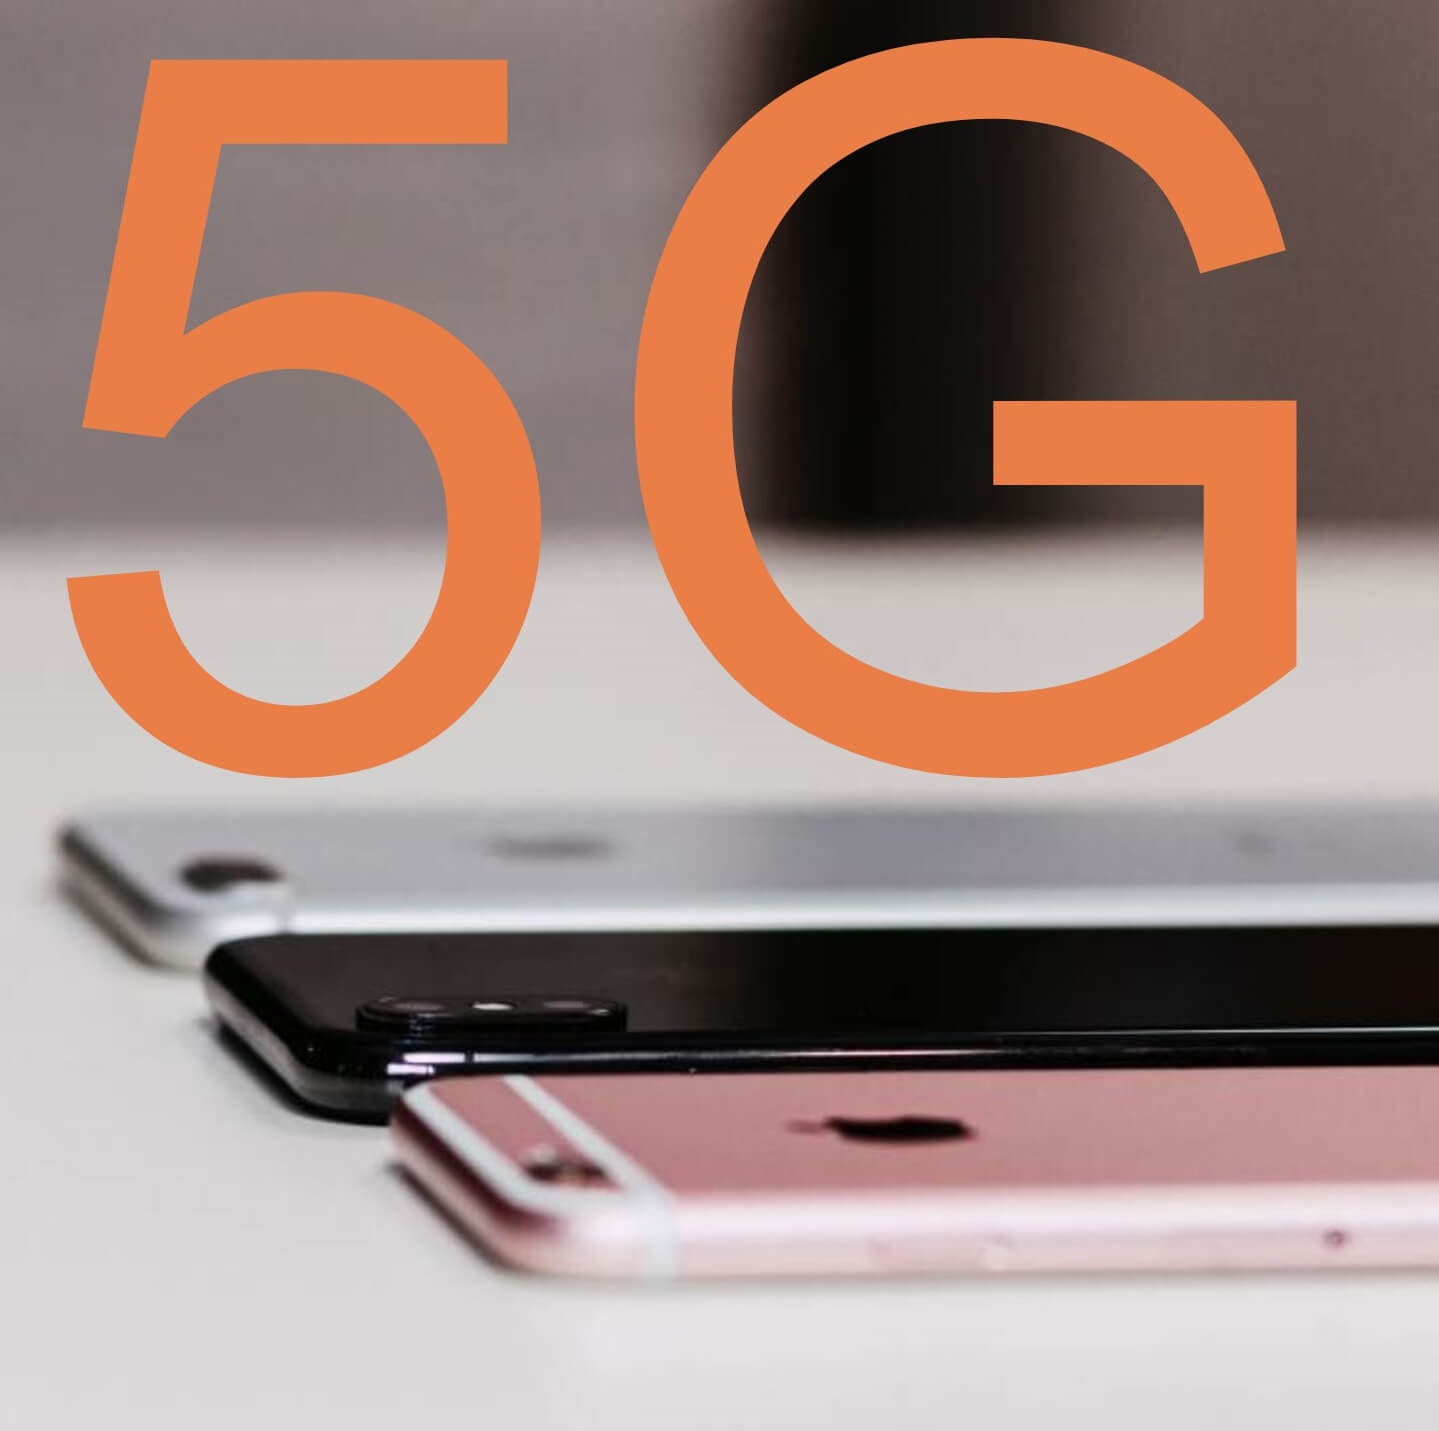 The impacts of 5G on older mobile phones